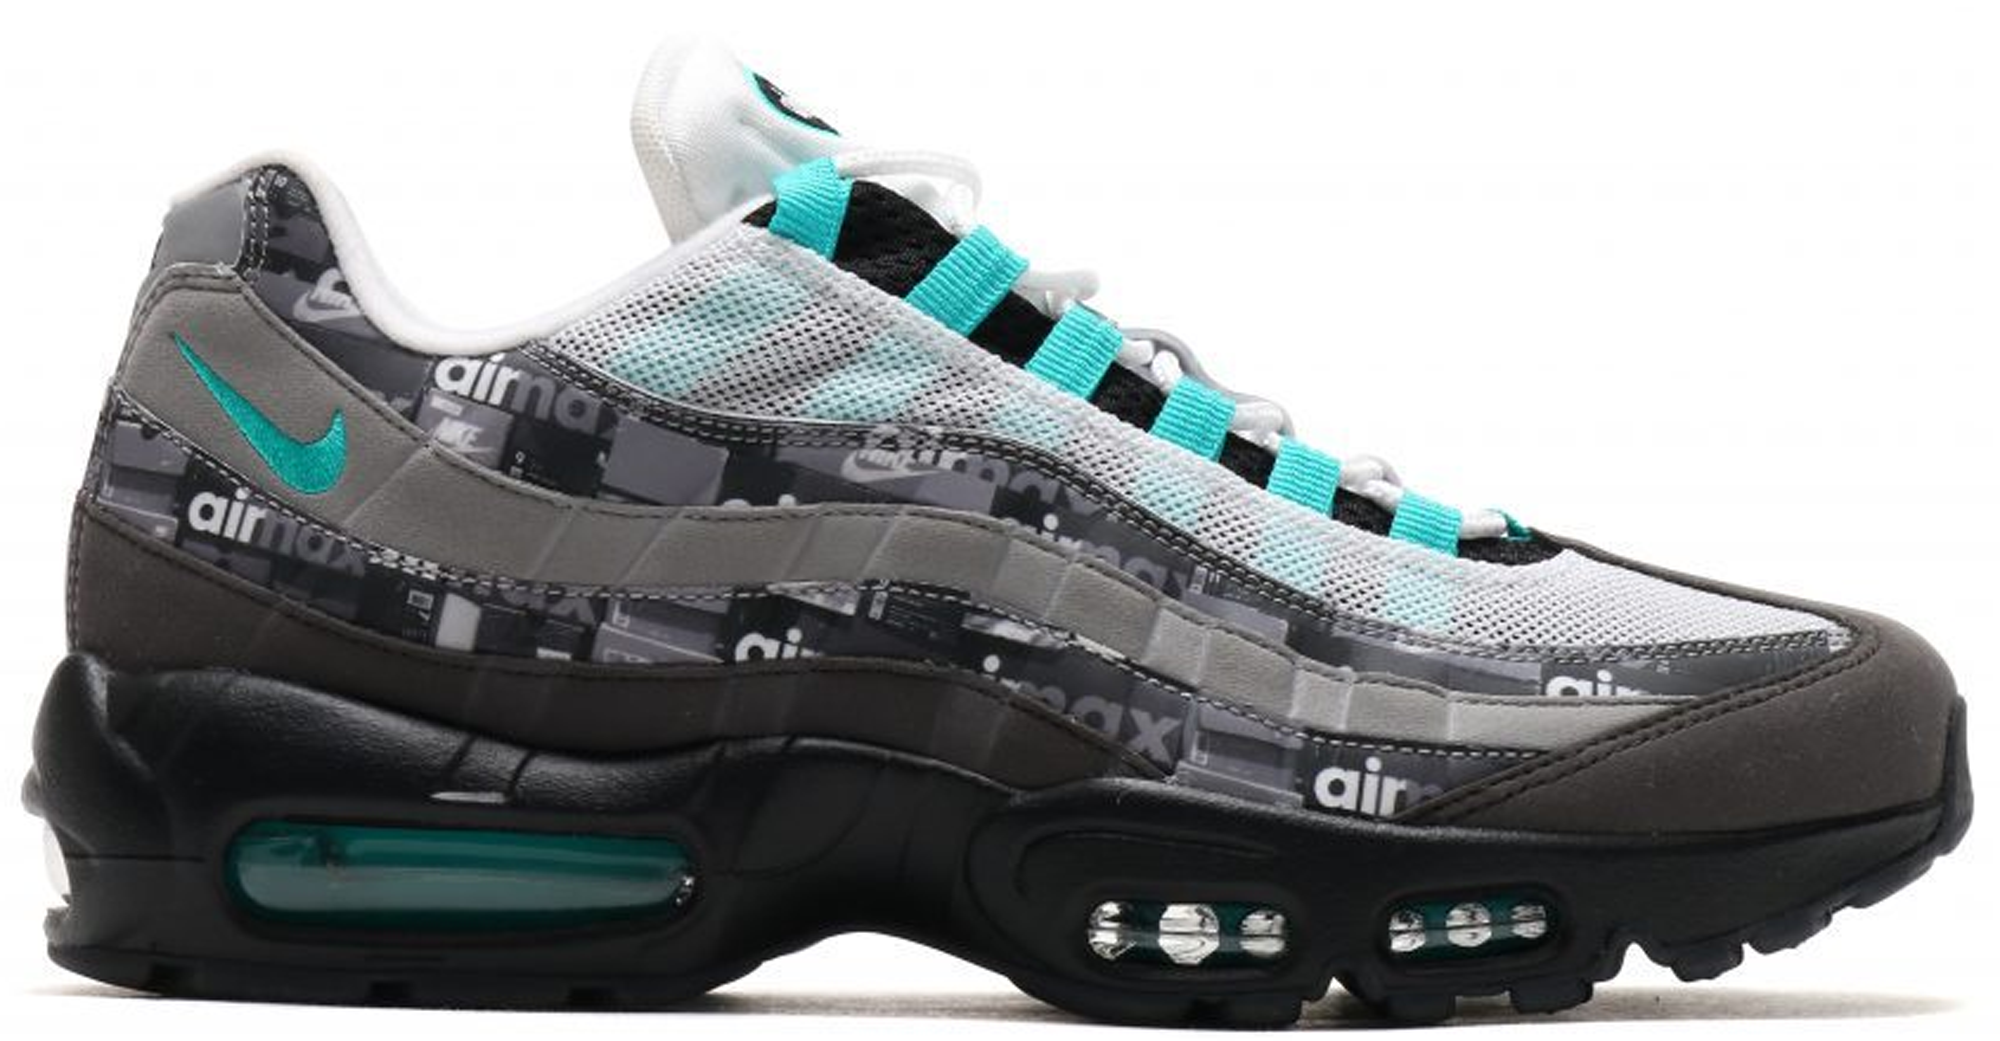 Nike X atmos 'We Love ' Air Max 95 sneakers 16Yet3M9